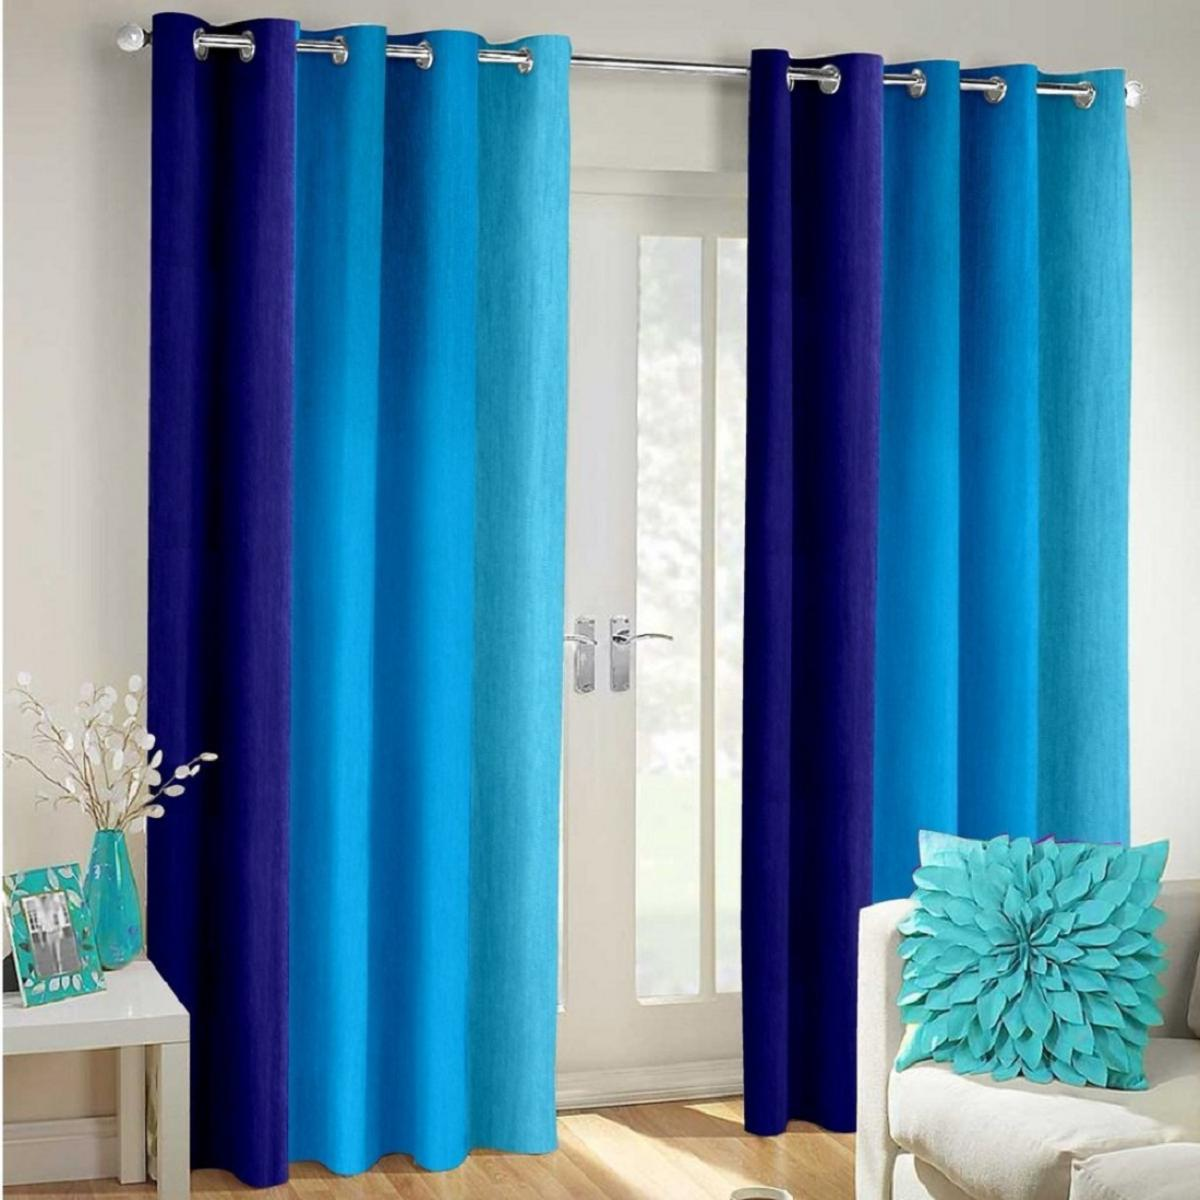 IndianOnlineMall shaded Single long crush curtain(4x5ft)